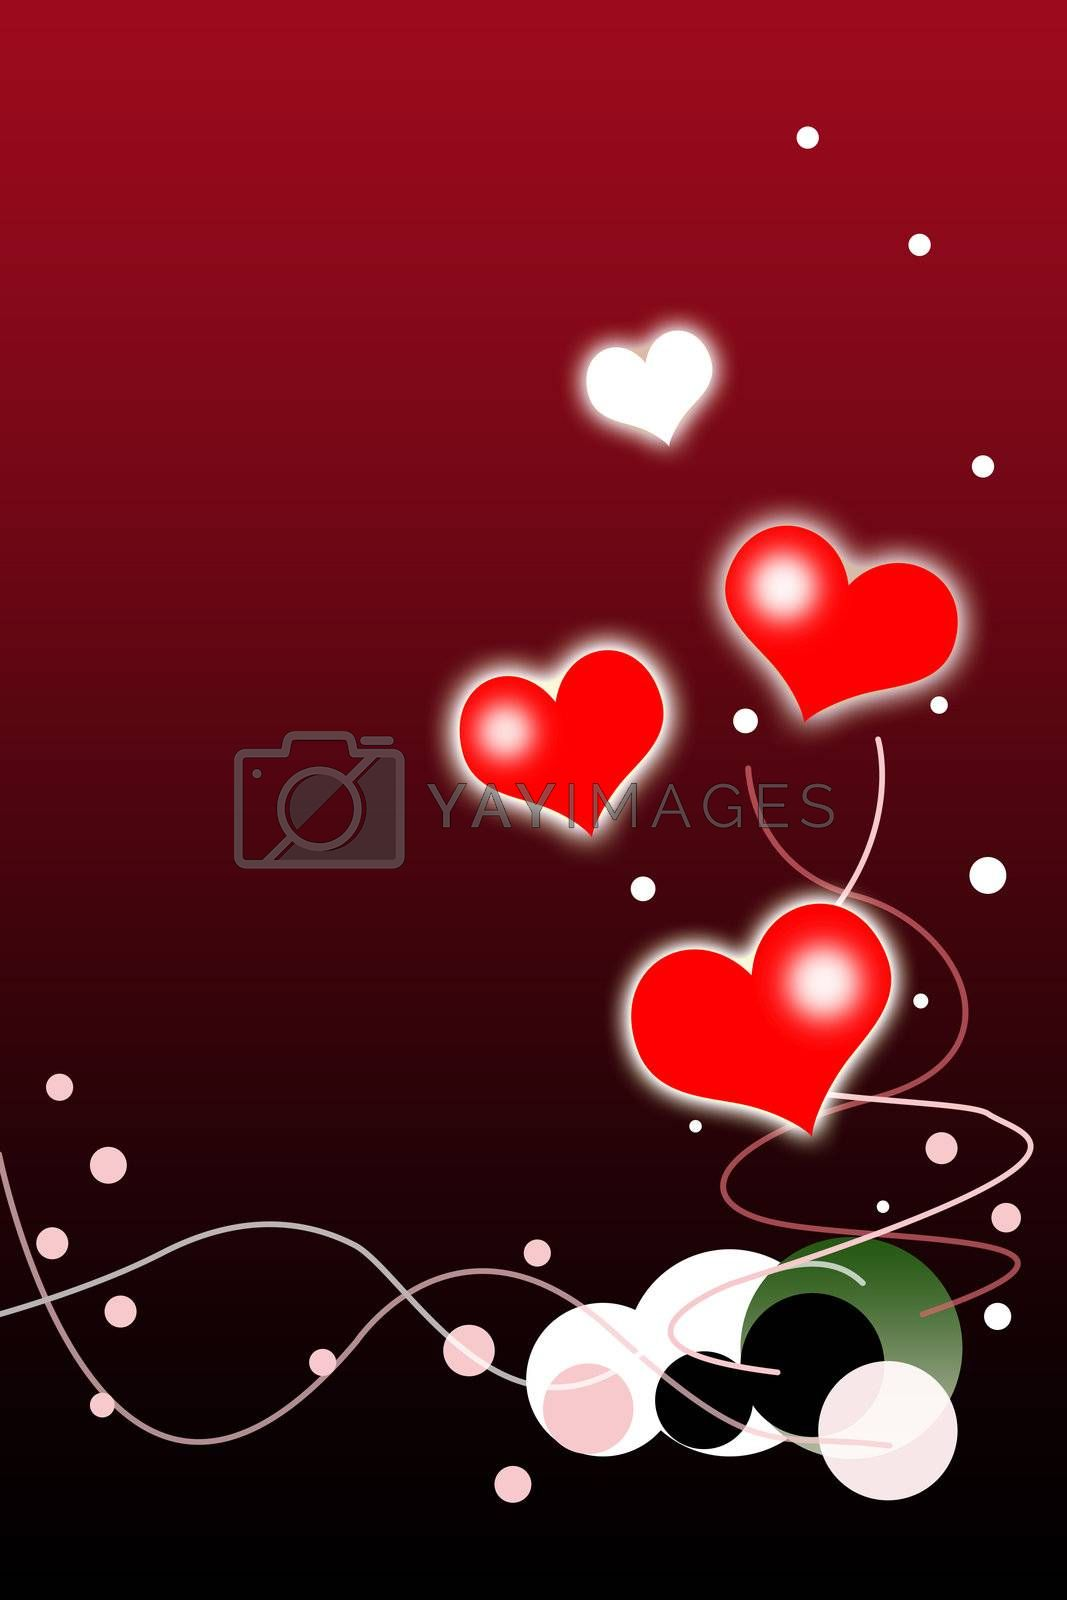 Valentines Day Background with Red and White Hearts Illustration.